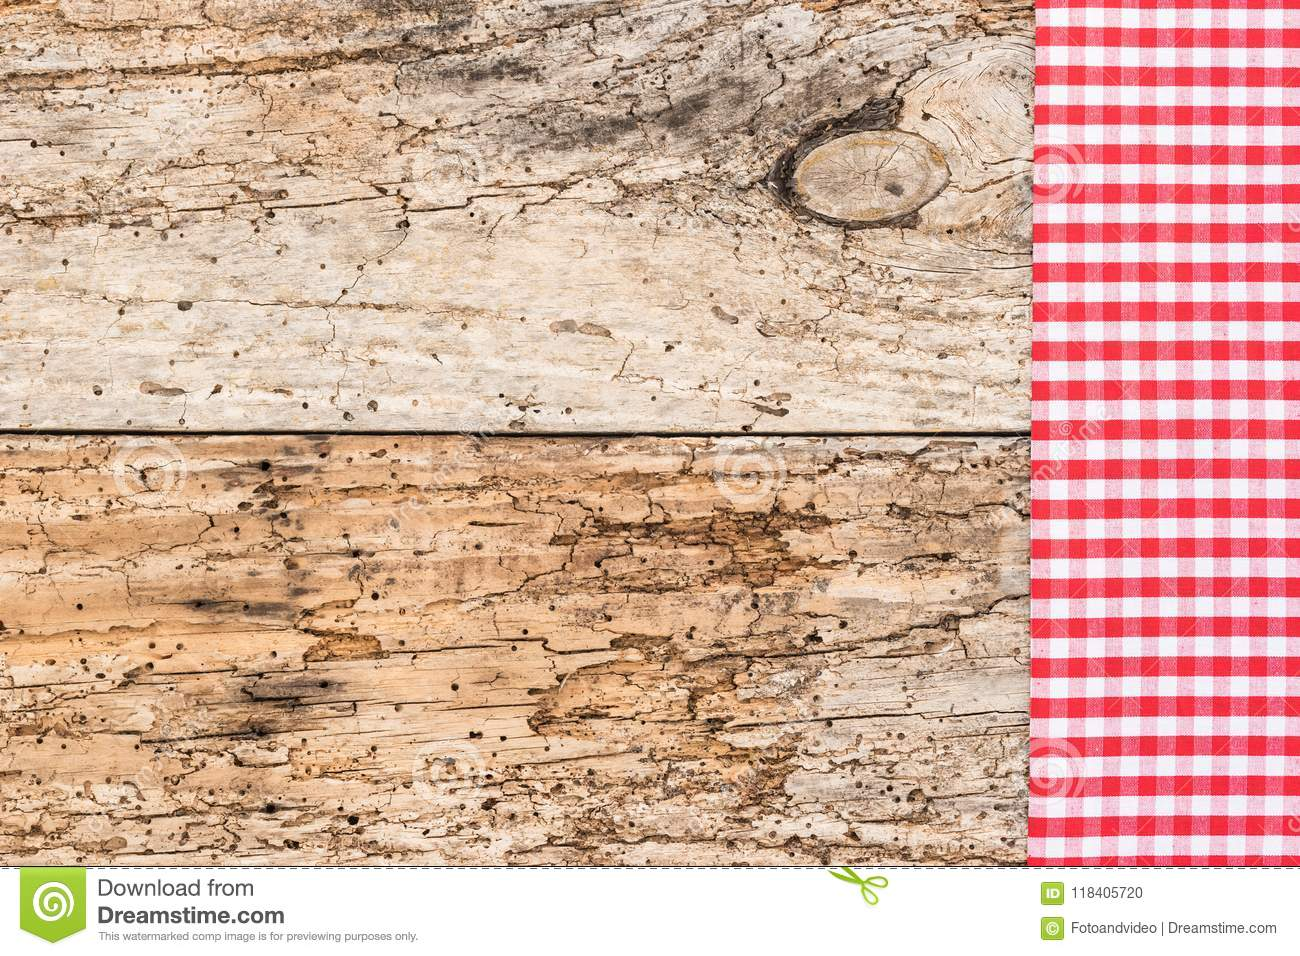 Wooden table background rustic texture, with red checkered tablecloth, high angel view